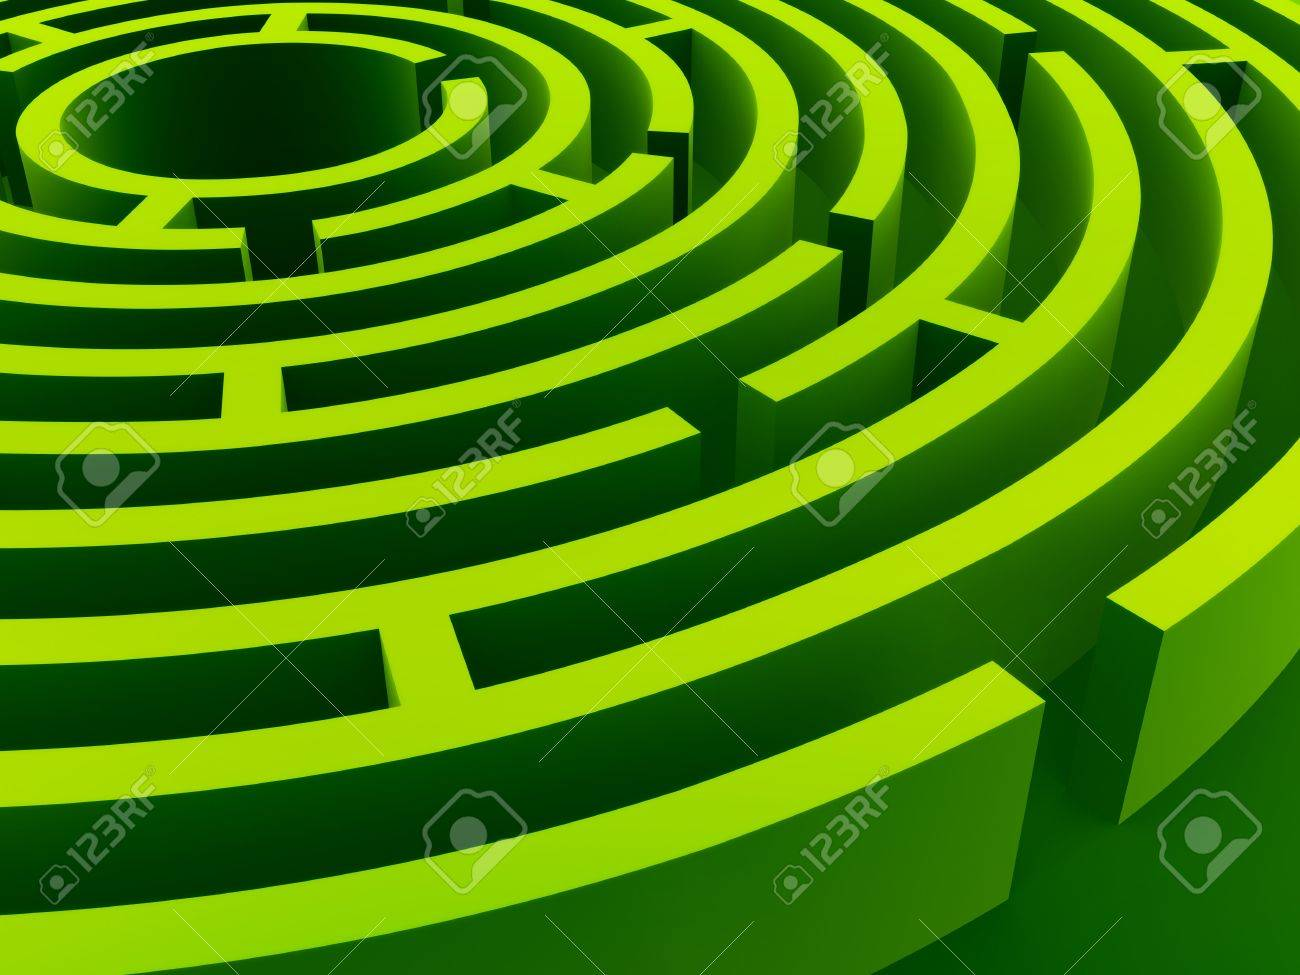 Green labyrinth in diagonal perspective Stock Photo - 2406103